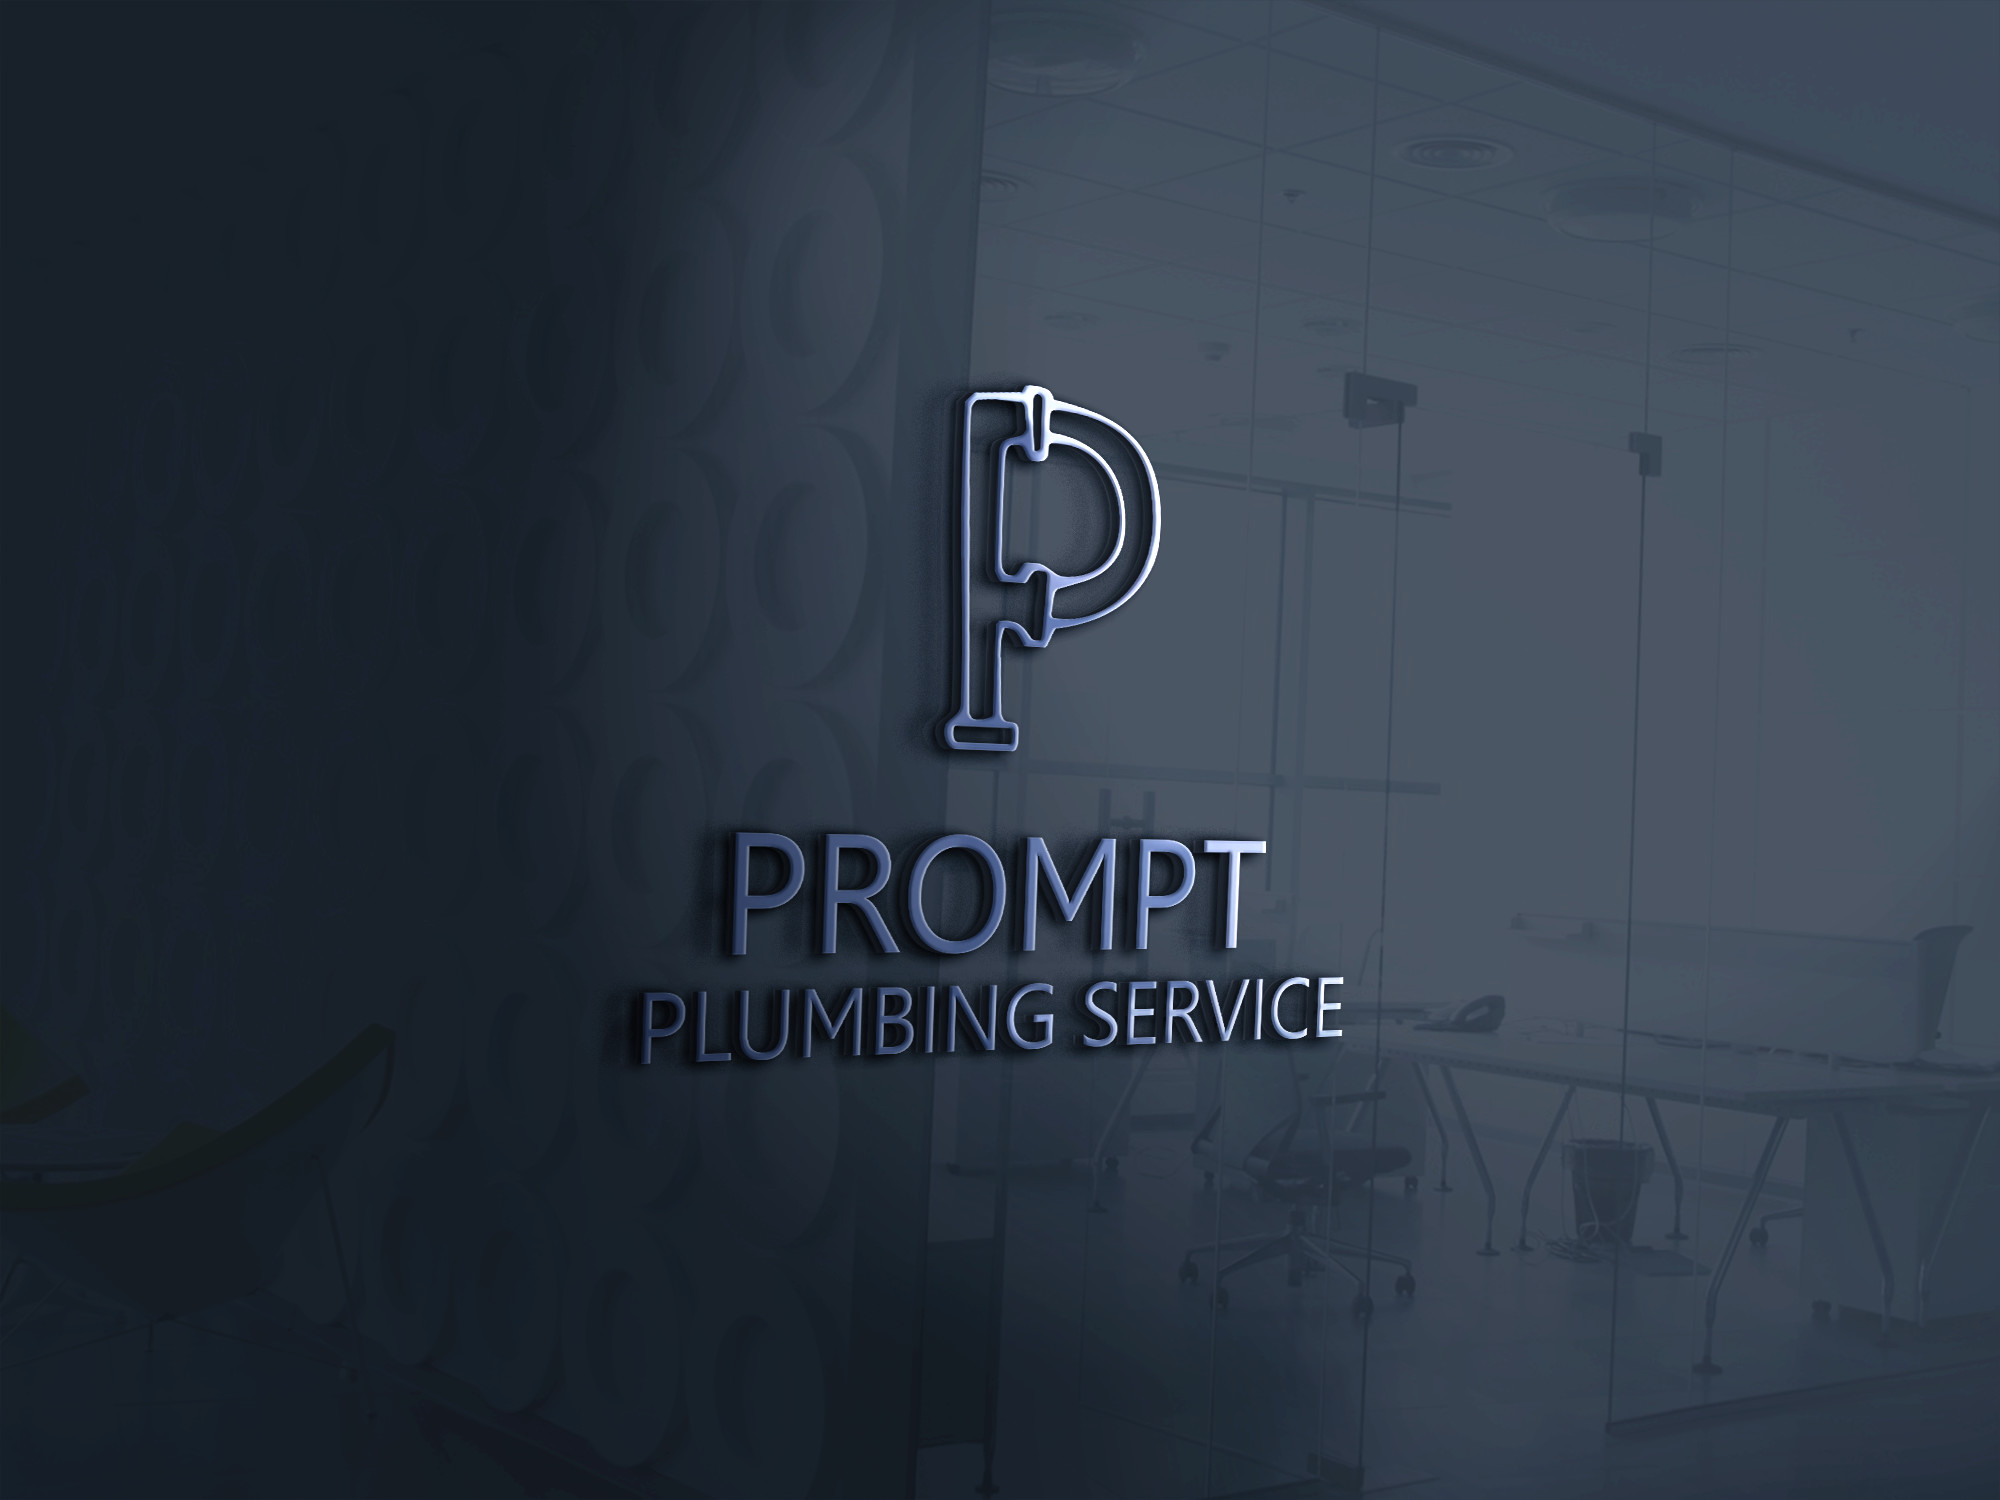 Logo Design by AQIB SHAIKH - Entry No. 22 in the Logo Design Contest Artistic Logo Design for Prompt Plumbing Services.